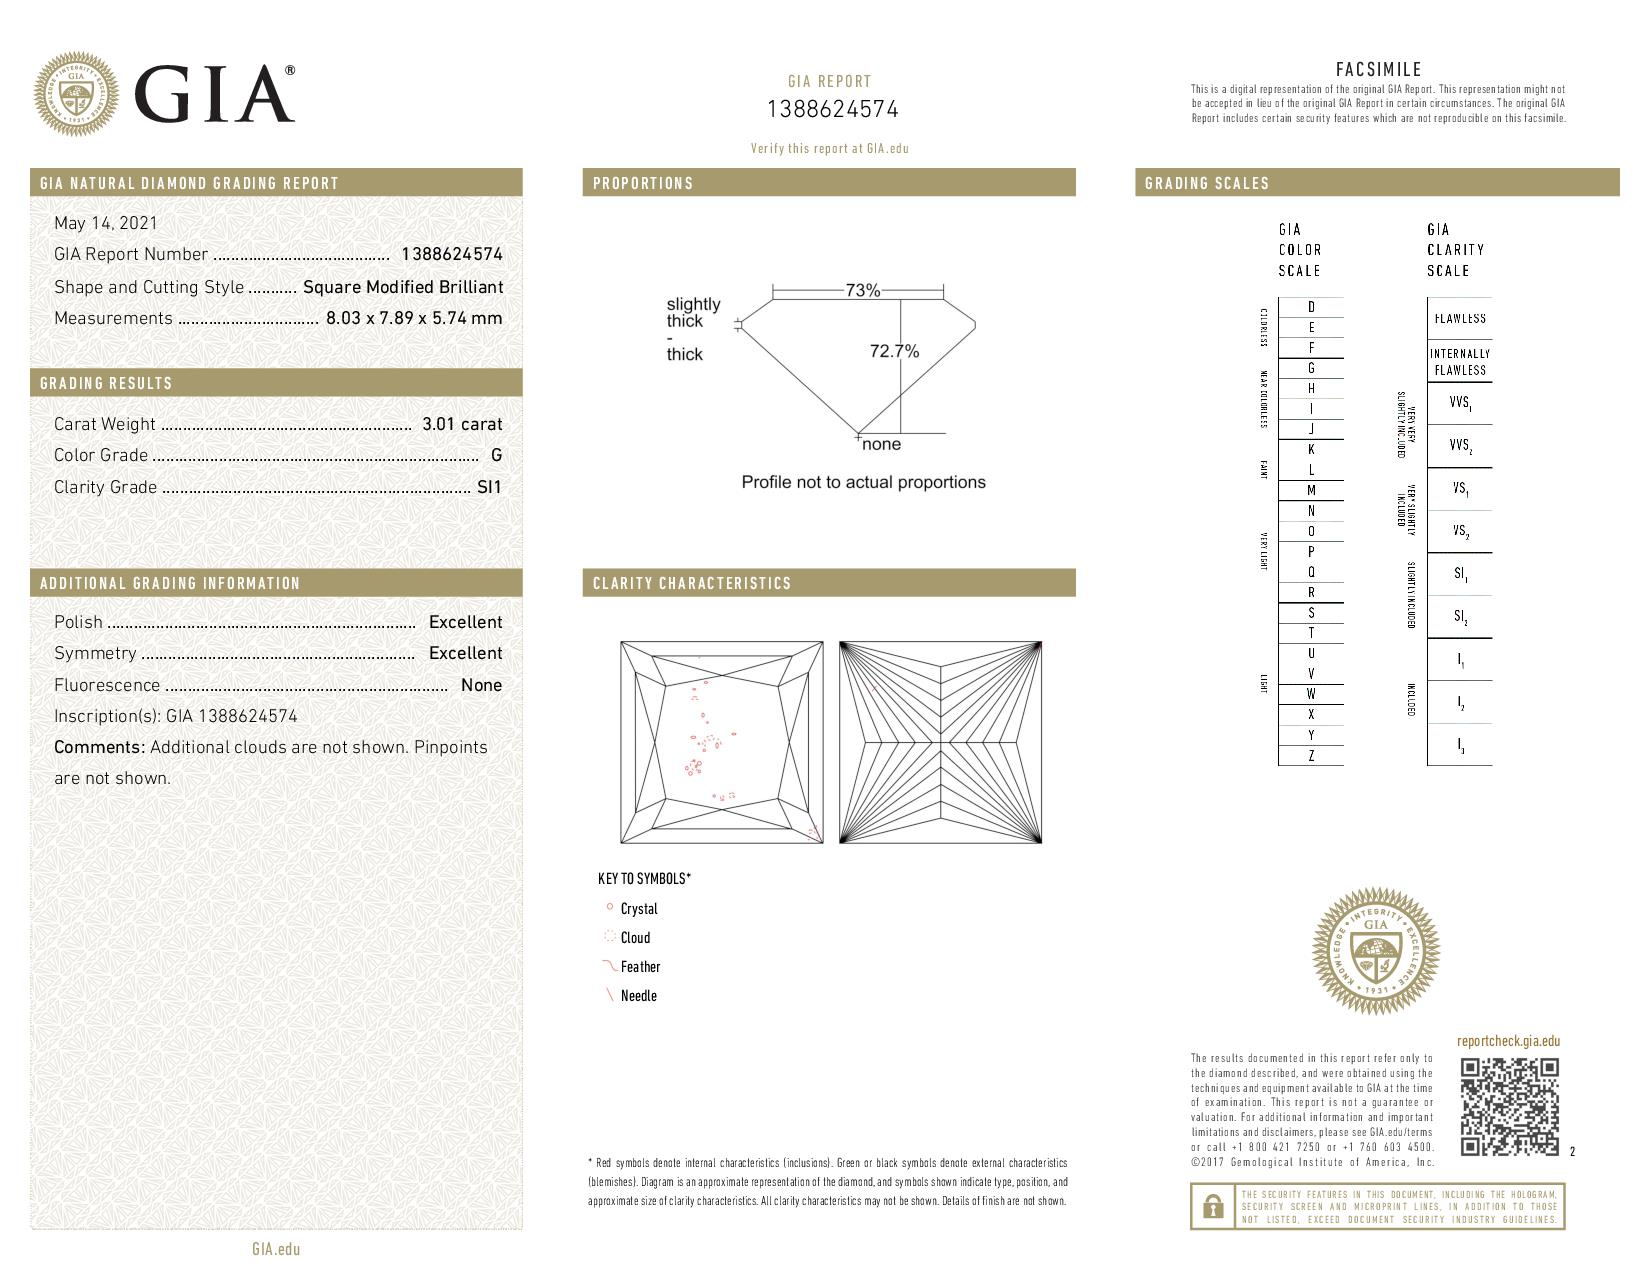 This is a 3.01 carat princess shape, G color, SI1 clarity natural diamond accompanied by a GIA grading report.